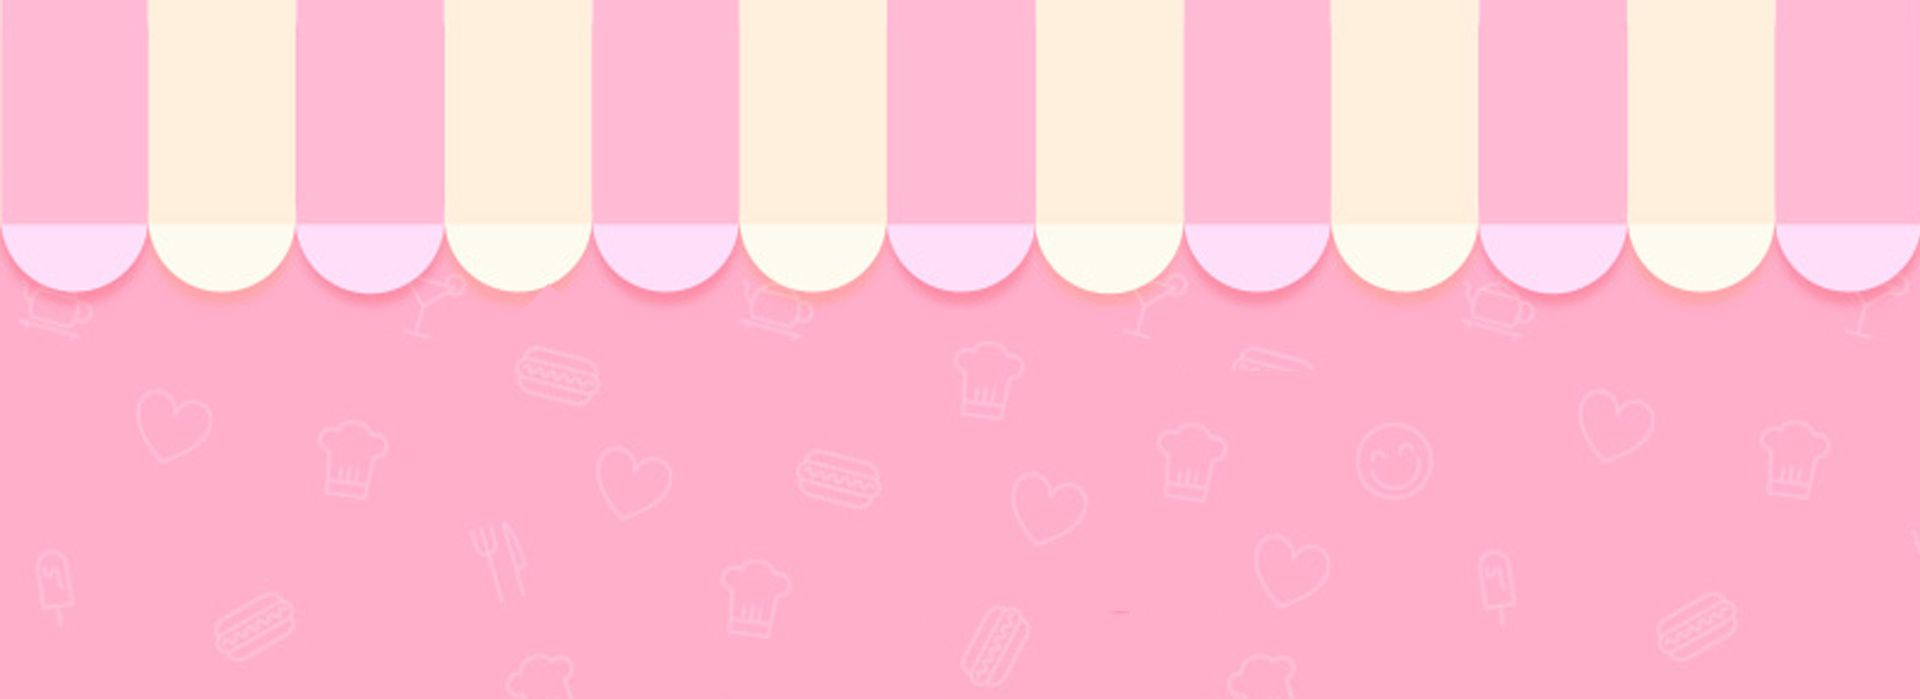 Fundo Rosa Amor Cute Pink Background Cupcakes Wallpaper Pink Background